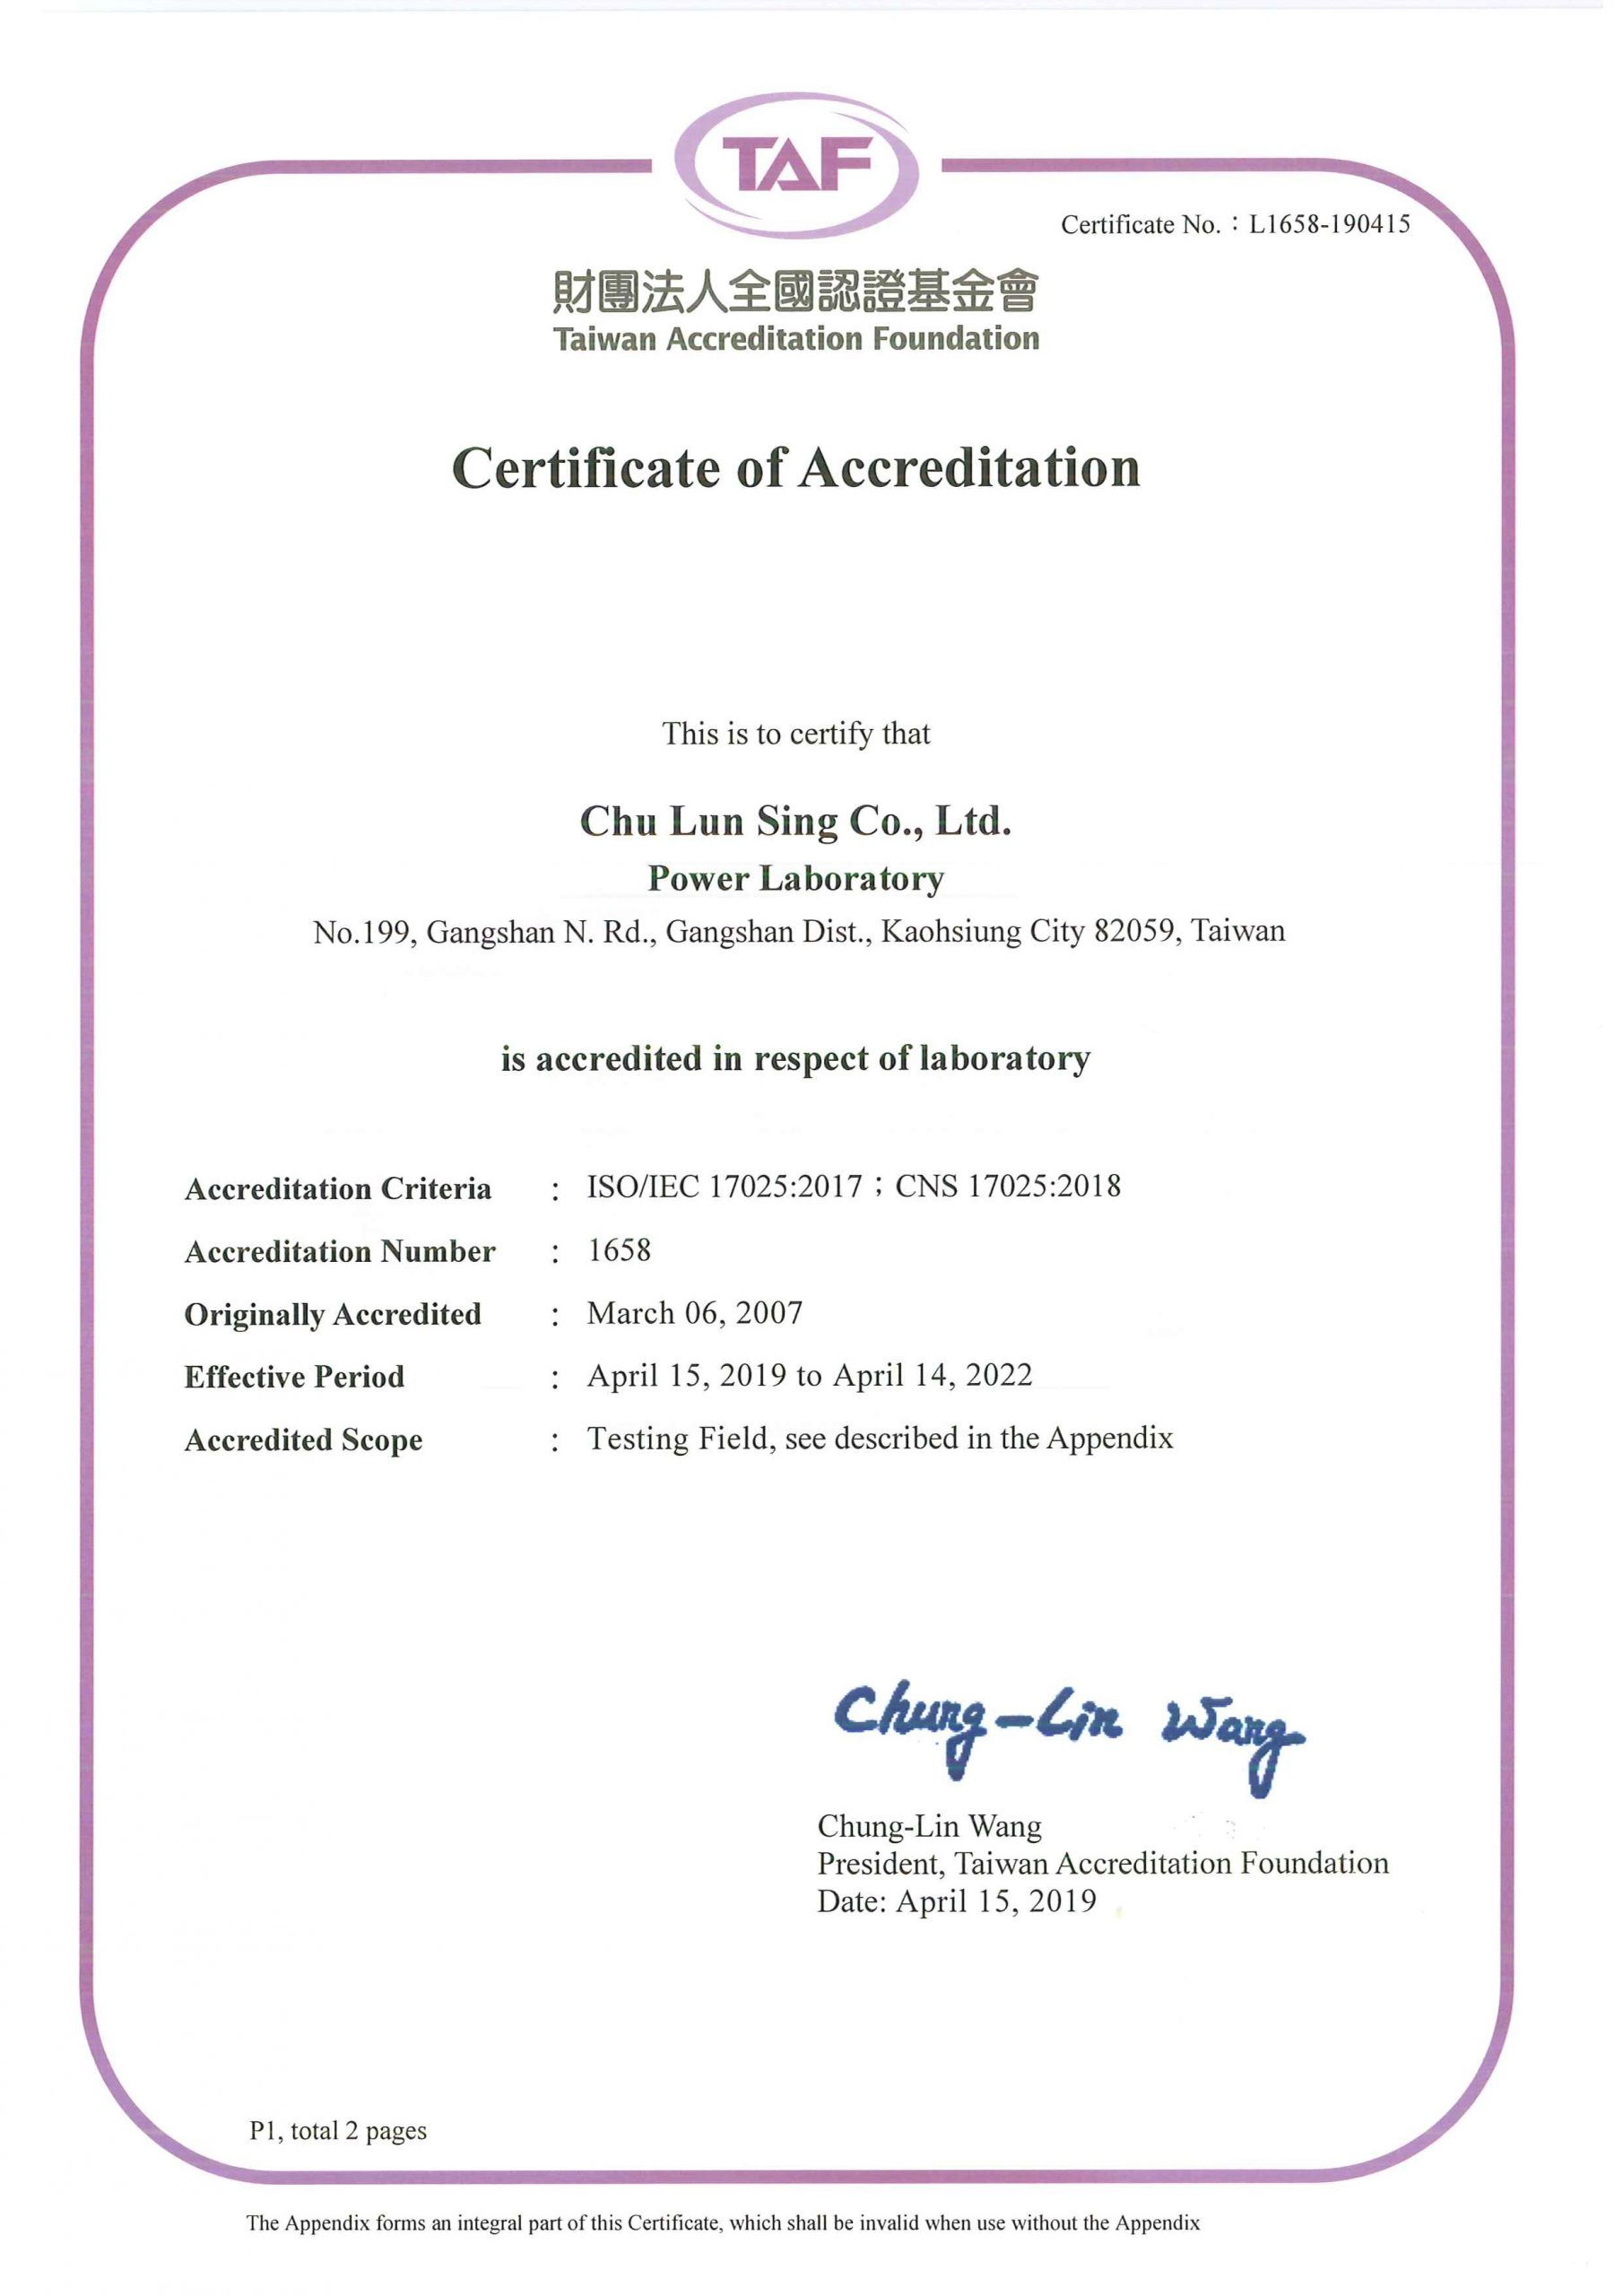 Taiwan Accreditation Foundation : ISO/IEC 17025 : 2005